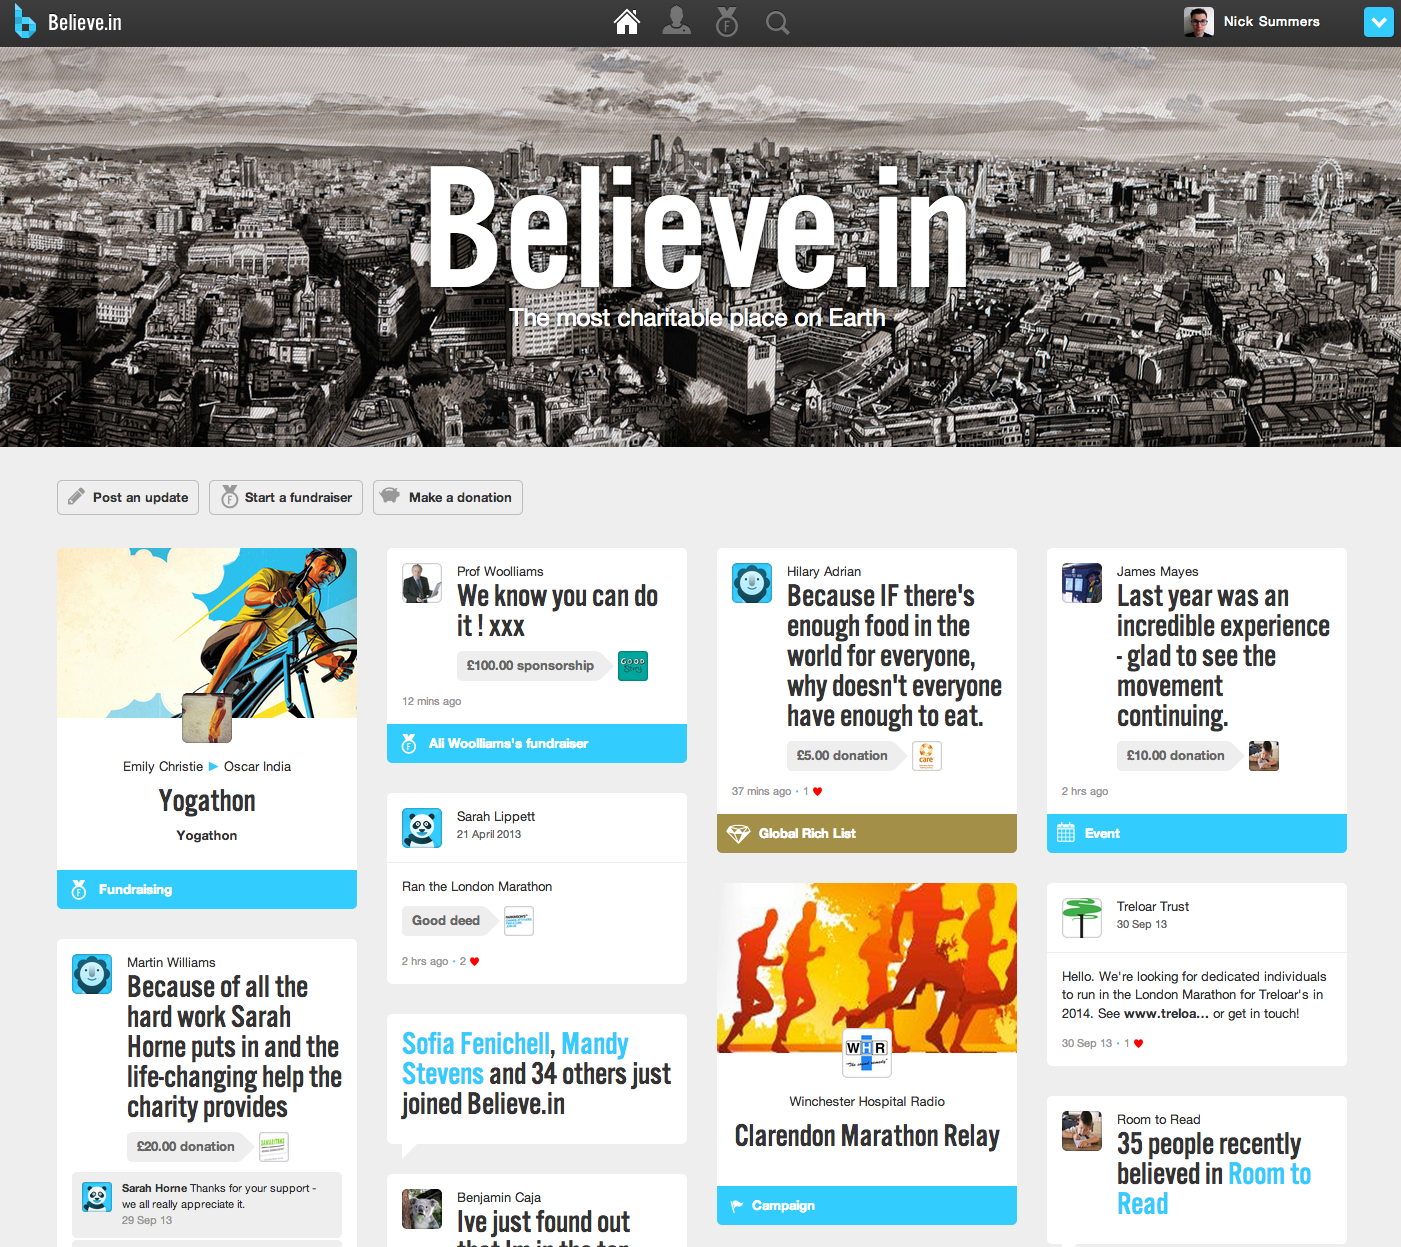 Fundraising Platform Believe.in Redesigned With Beautiful Tile Layout